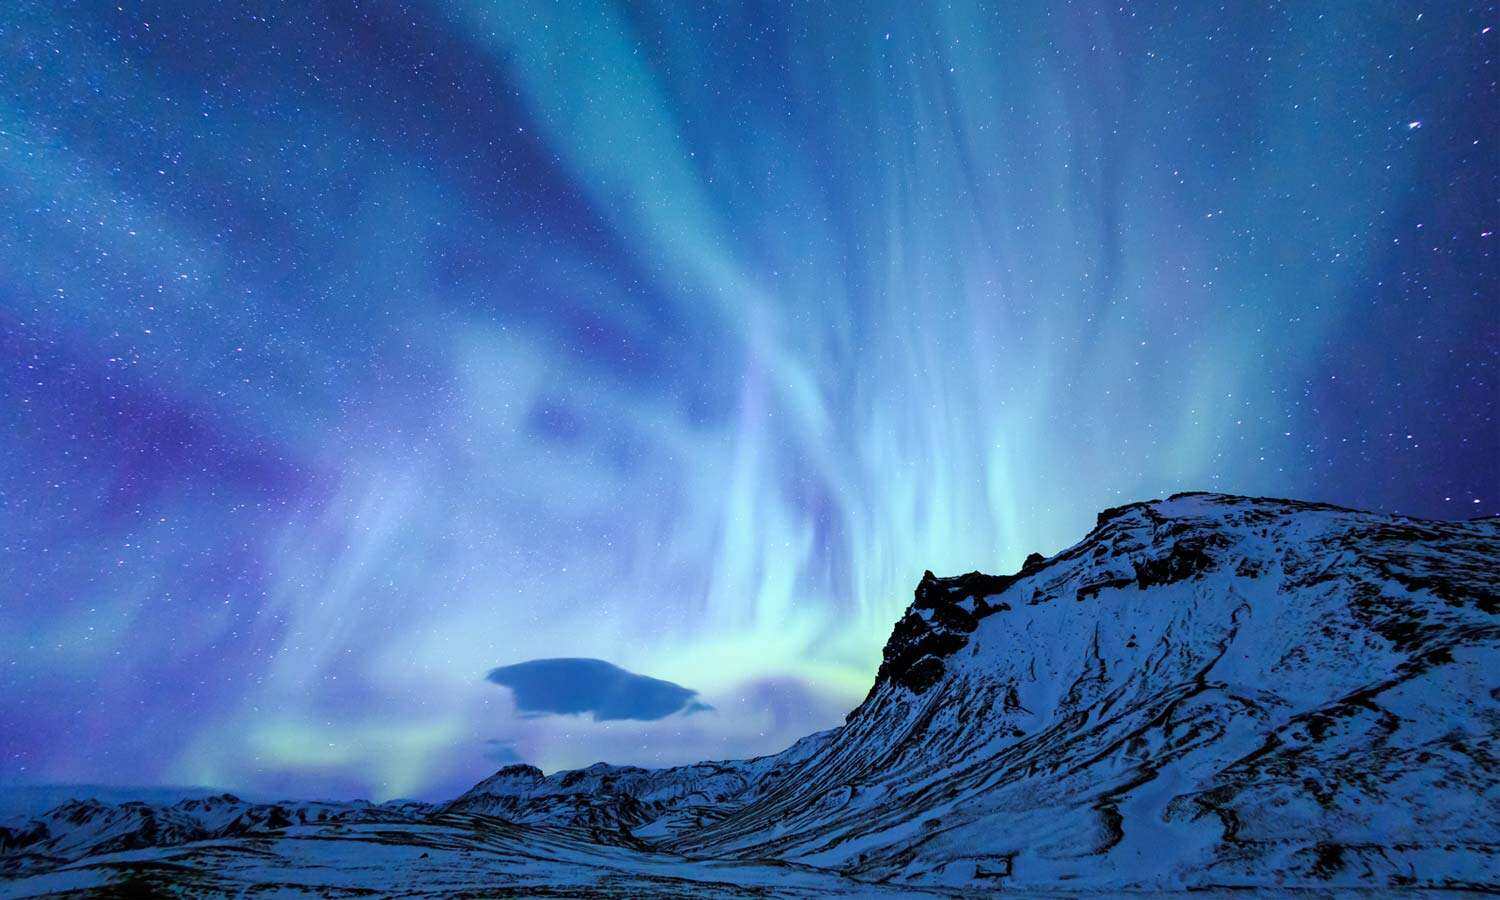 How to Capture Your Moment under Alaska's Northern Lights